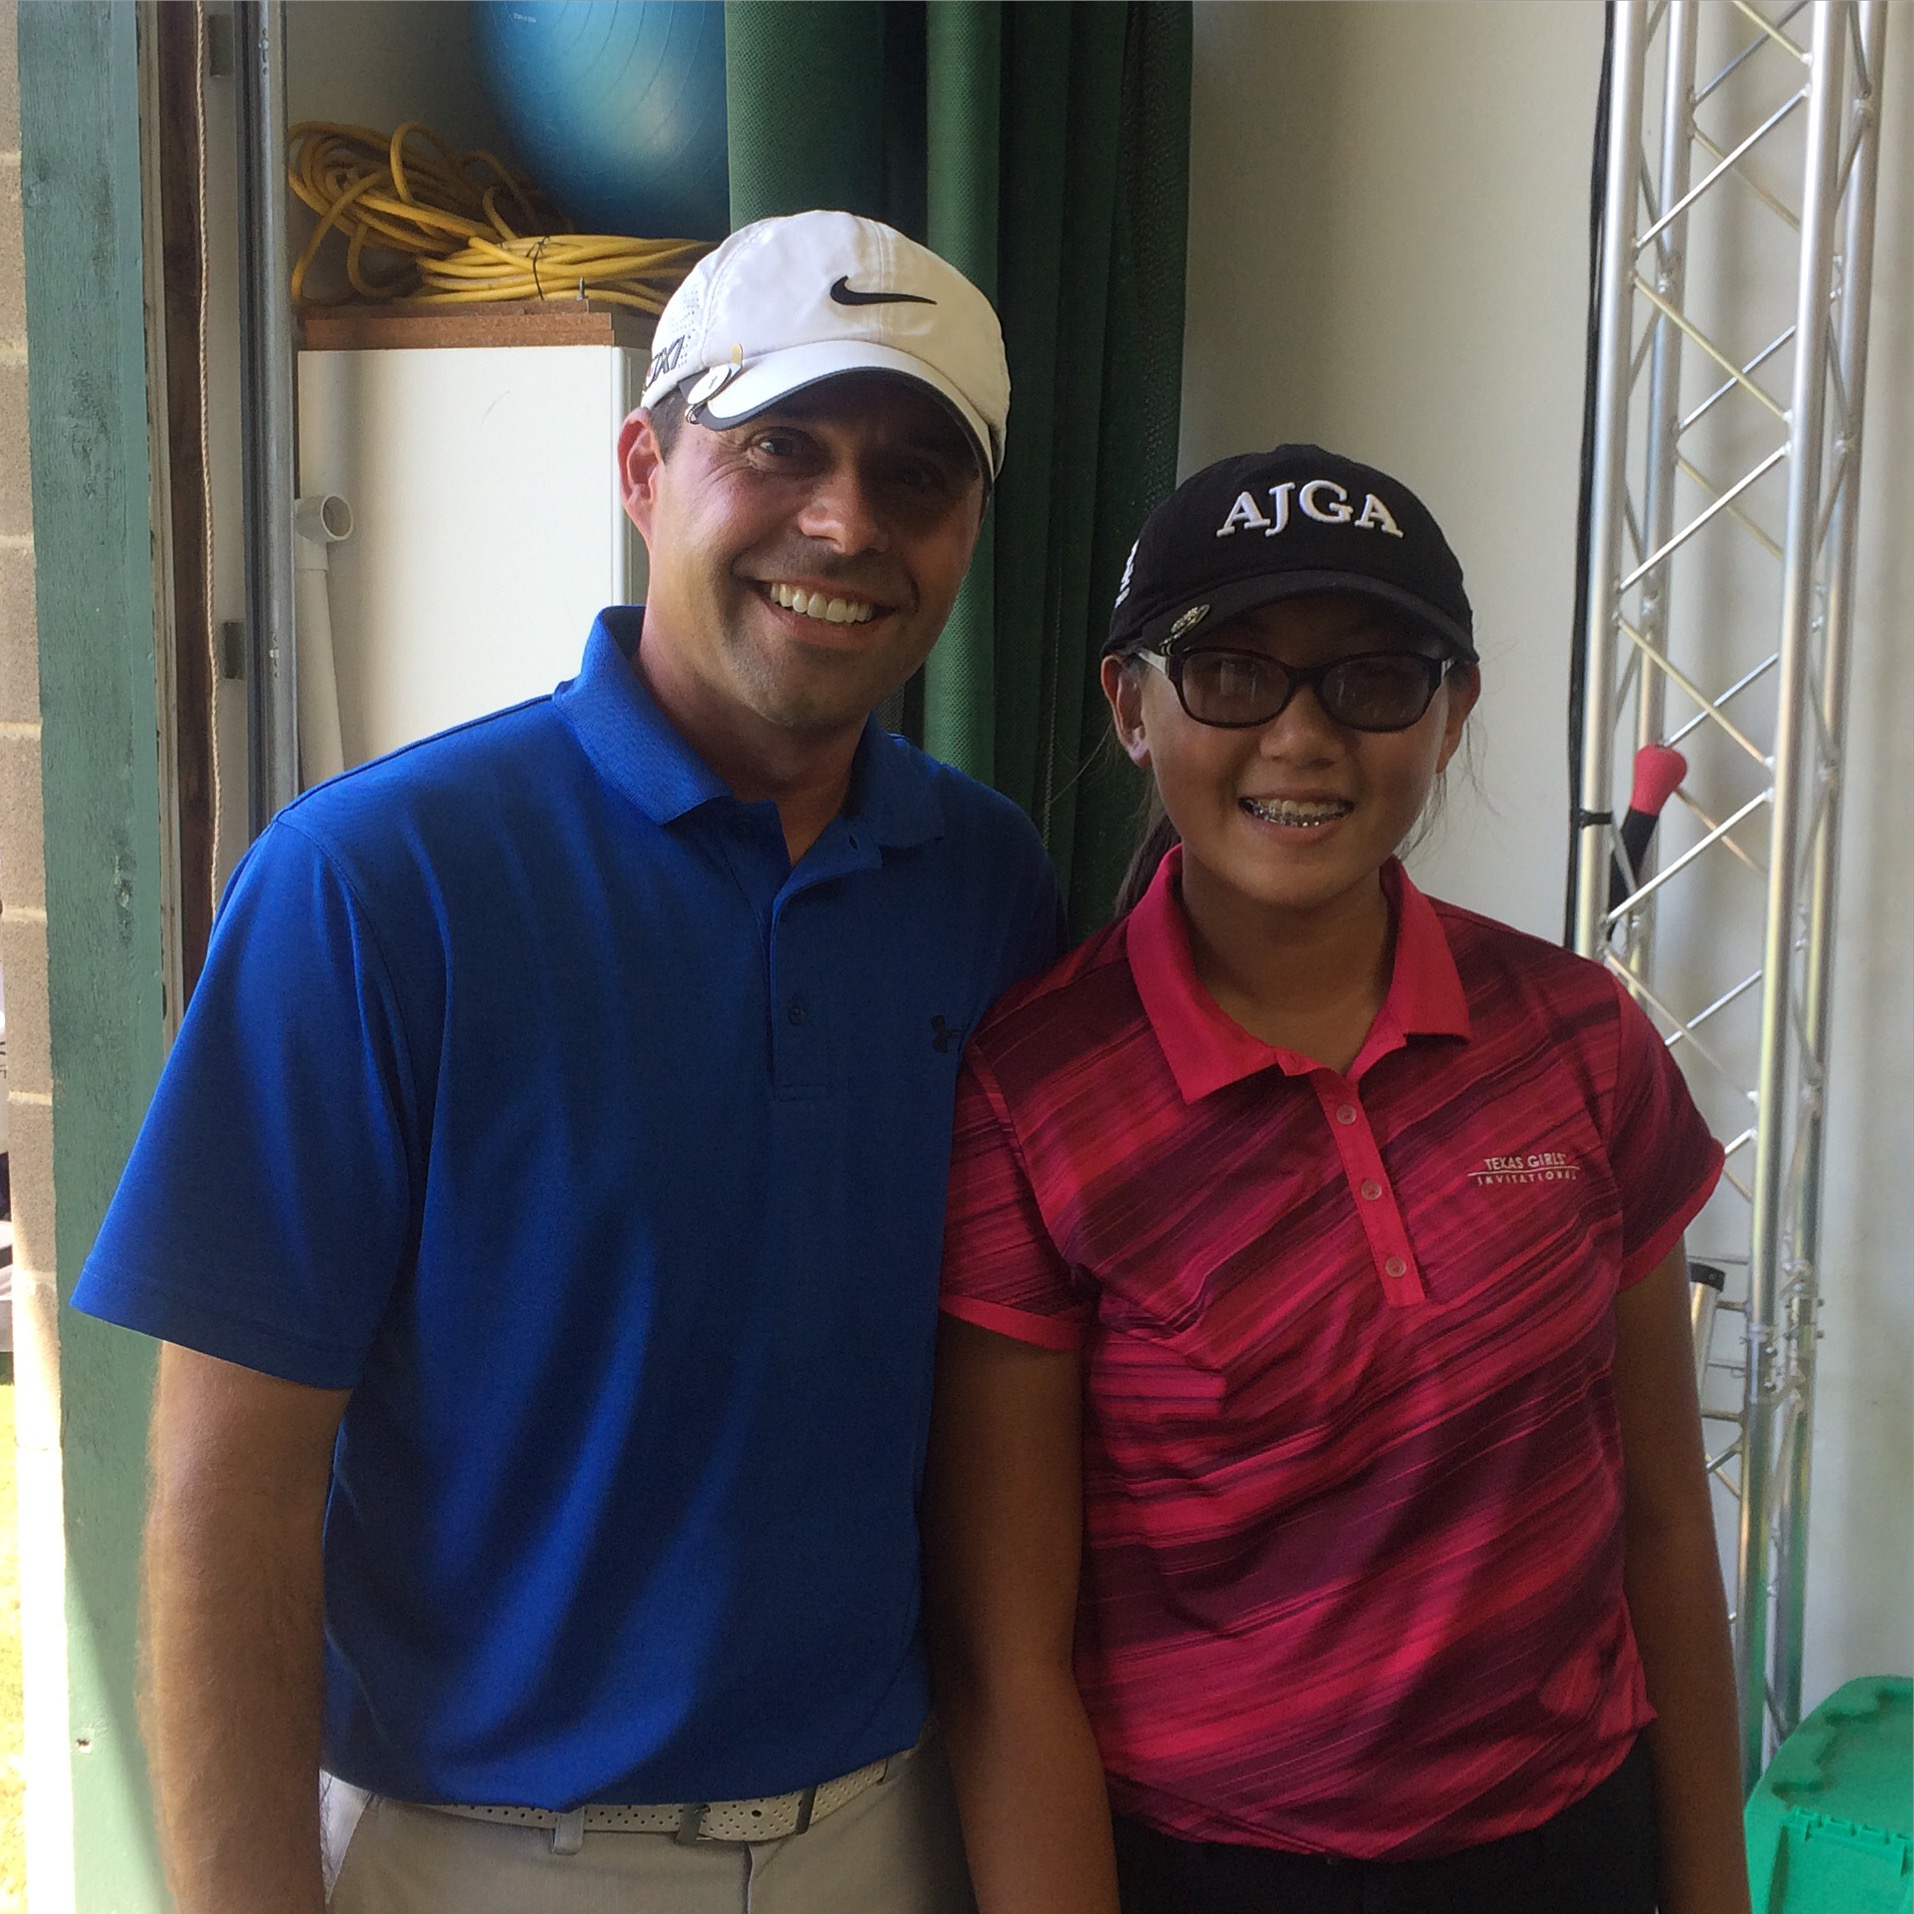 THE BEST JUNIOR GOLF LESSONS IN DALLAS FORT WORTH.   THE BEST JUNIOR GOLF LESSONS IN DALLAS FORT WORTH.